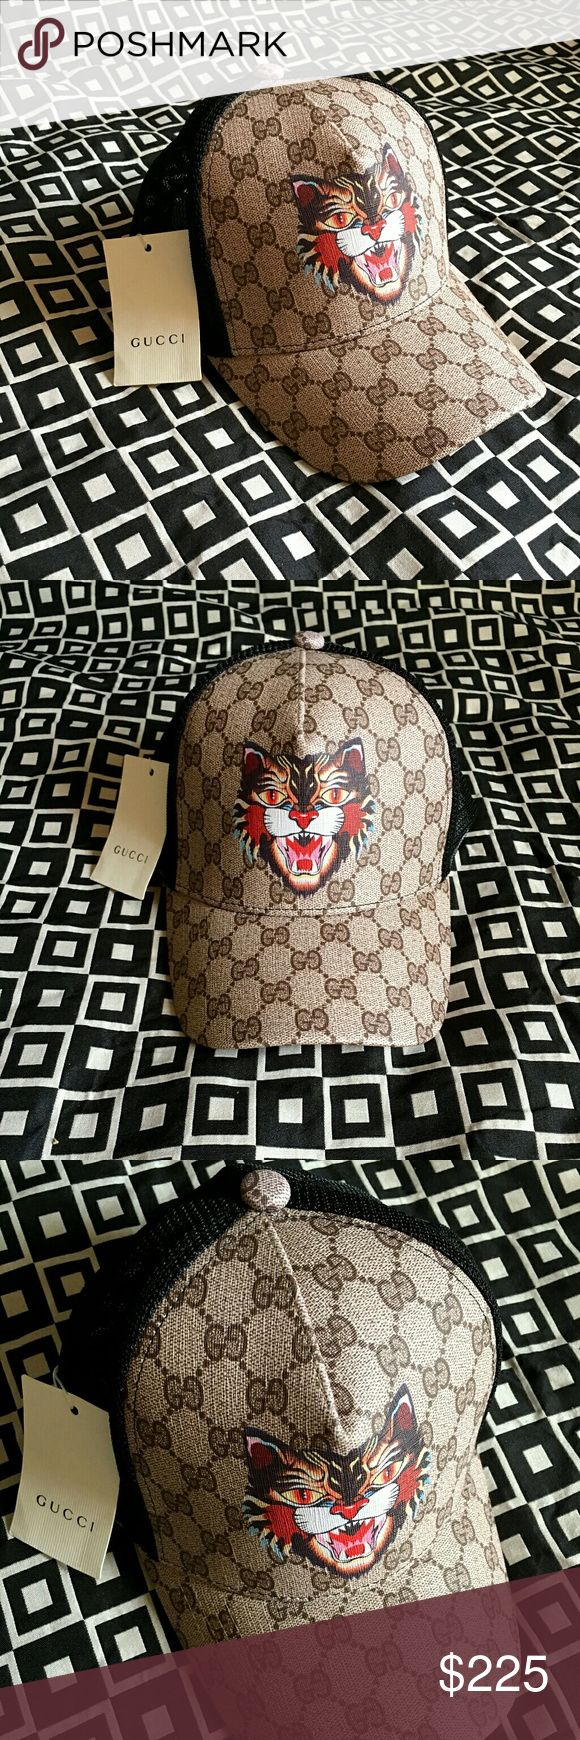 Gucci GG Angry Cat Print Baseball Hat!!! Gucci GG Angry Cat Print Baseball Hat!!!  Brand New!!!  Unisex...For Man Or Woman!!!  Adjustable Strap!!!  Comes With Gucci Gift Box!!!  Great Gift Idea!!!  Last Available!!!  Check My Listings For Other Great Items!!!             Ignore: Gucci gg monogram casual dress belts men's women's guccissma leather monogram web tiger bee embossed panther wool cable knit blooms supreme print angry cat ufo dragon studded snake double g tigers fitted SnapBack cap…